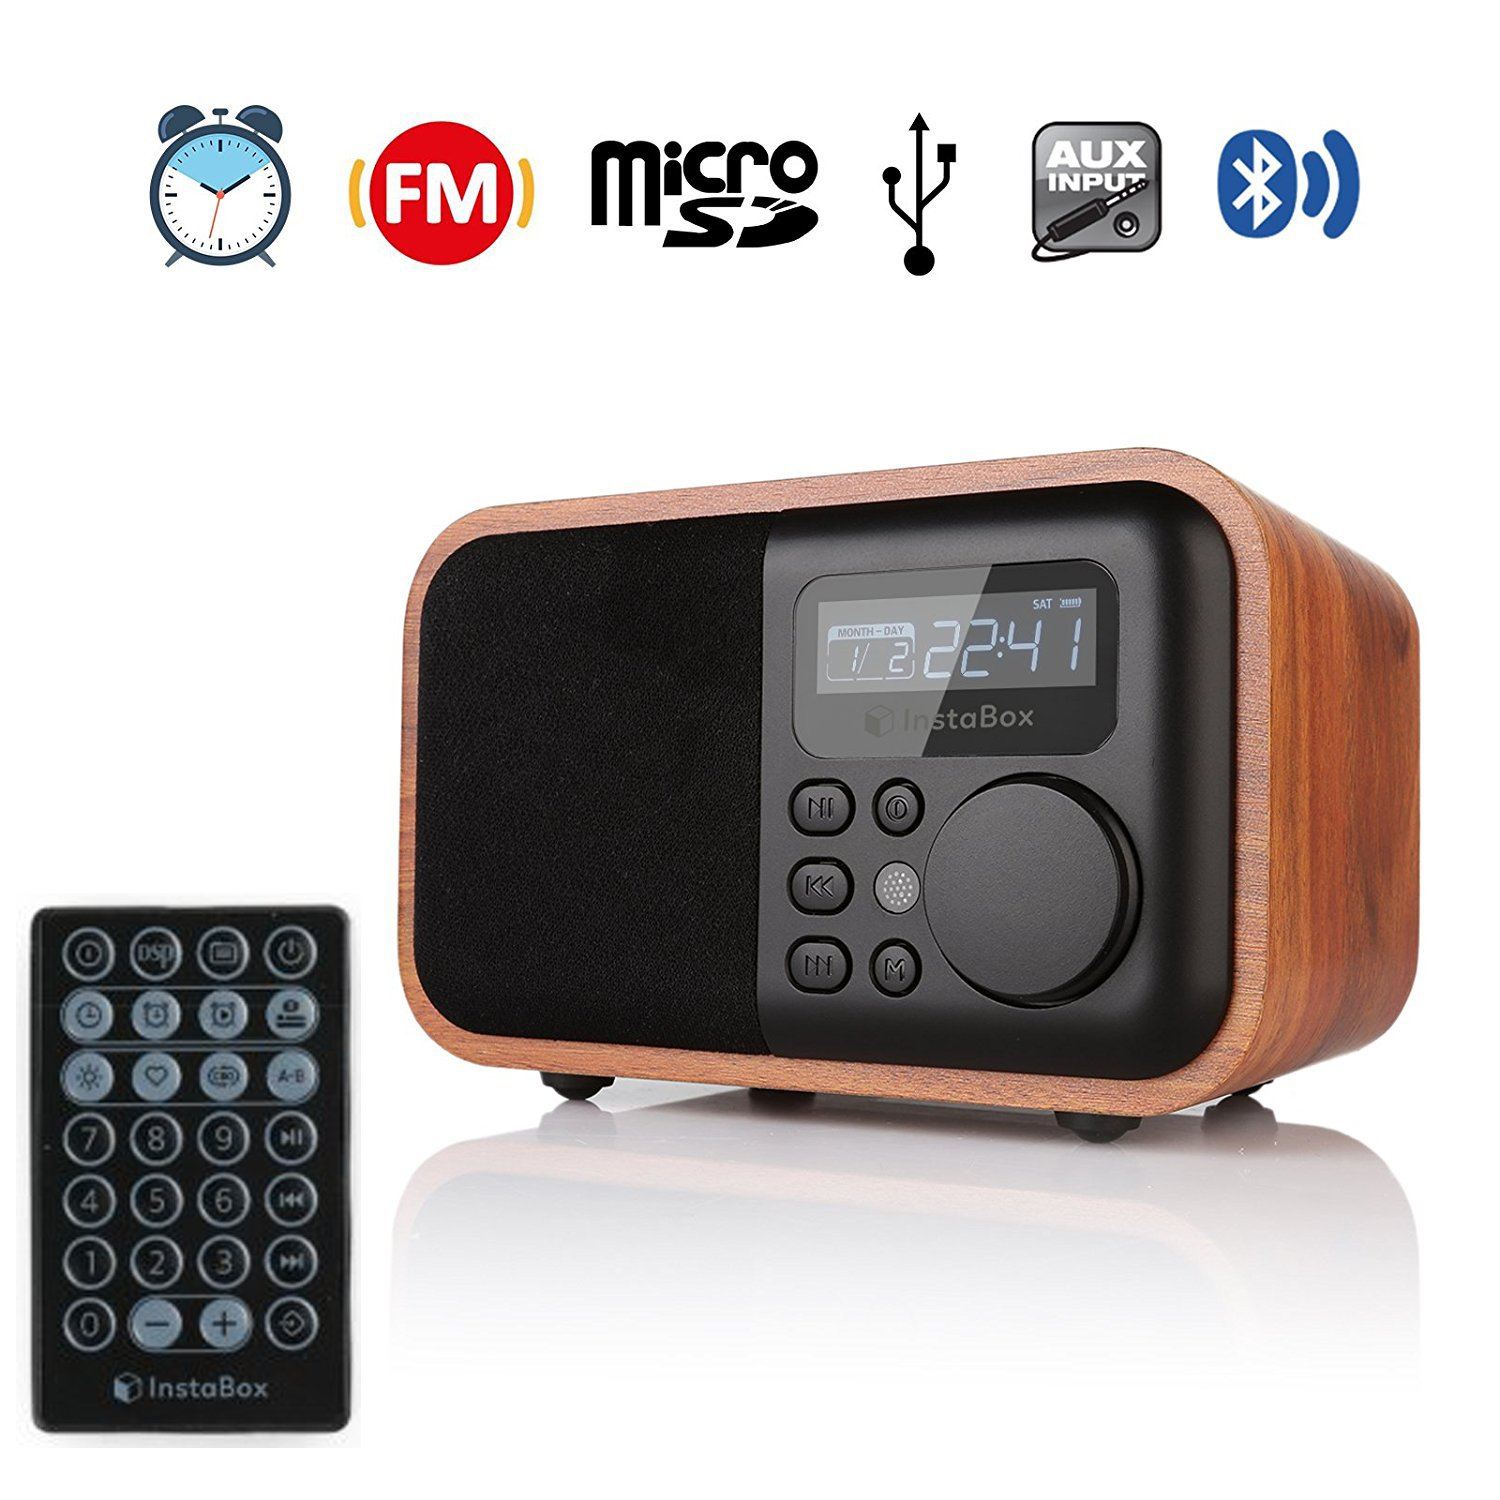 InstaBox i90 Upgraded Version Wooden Digital Multi-Functional Speaker with Bluetooth FM Radio Alarm Clock MP3 Player, Supports Micro SD/TF Card and USB with Remote Control, Brown Wood